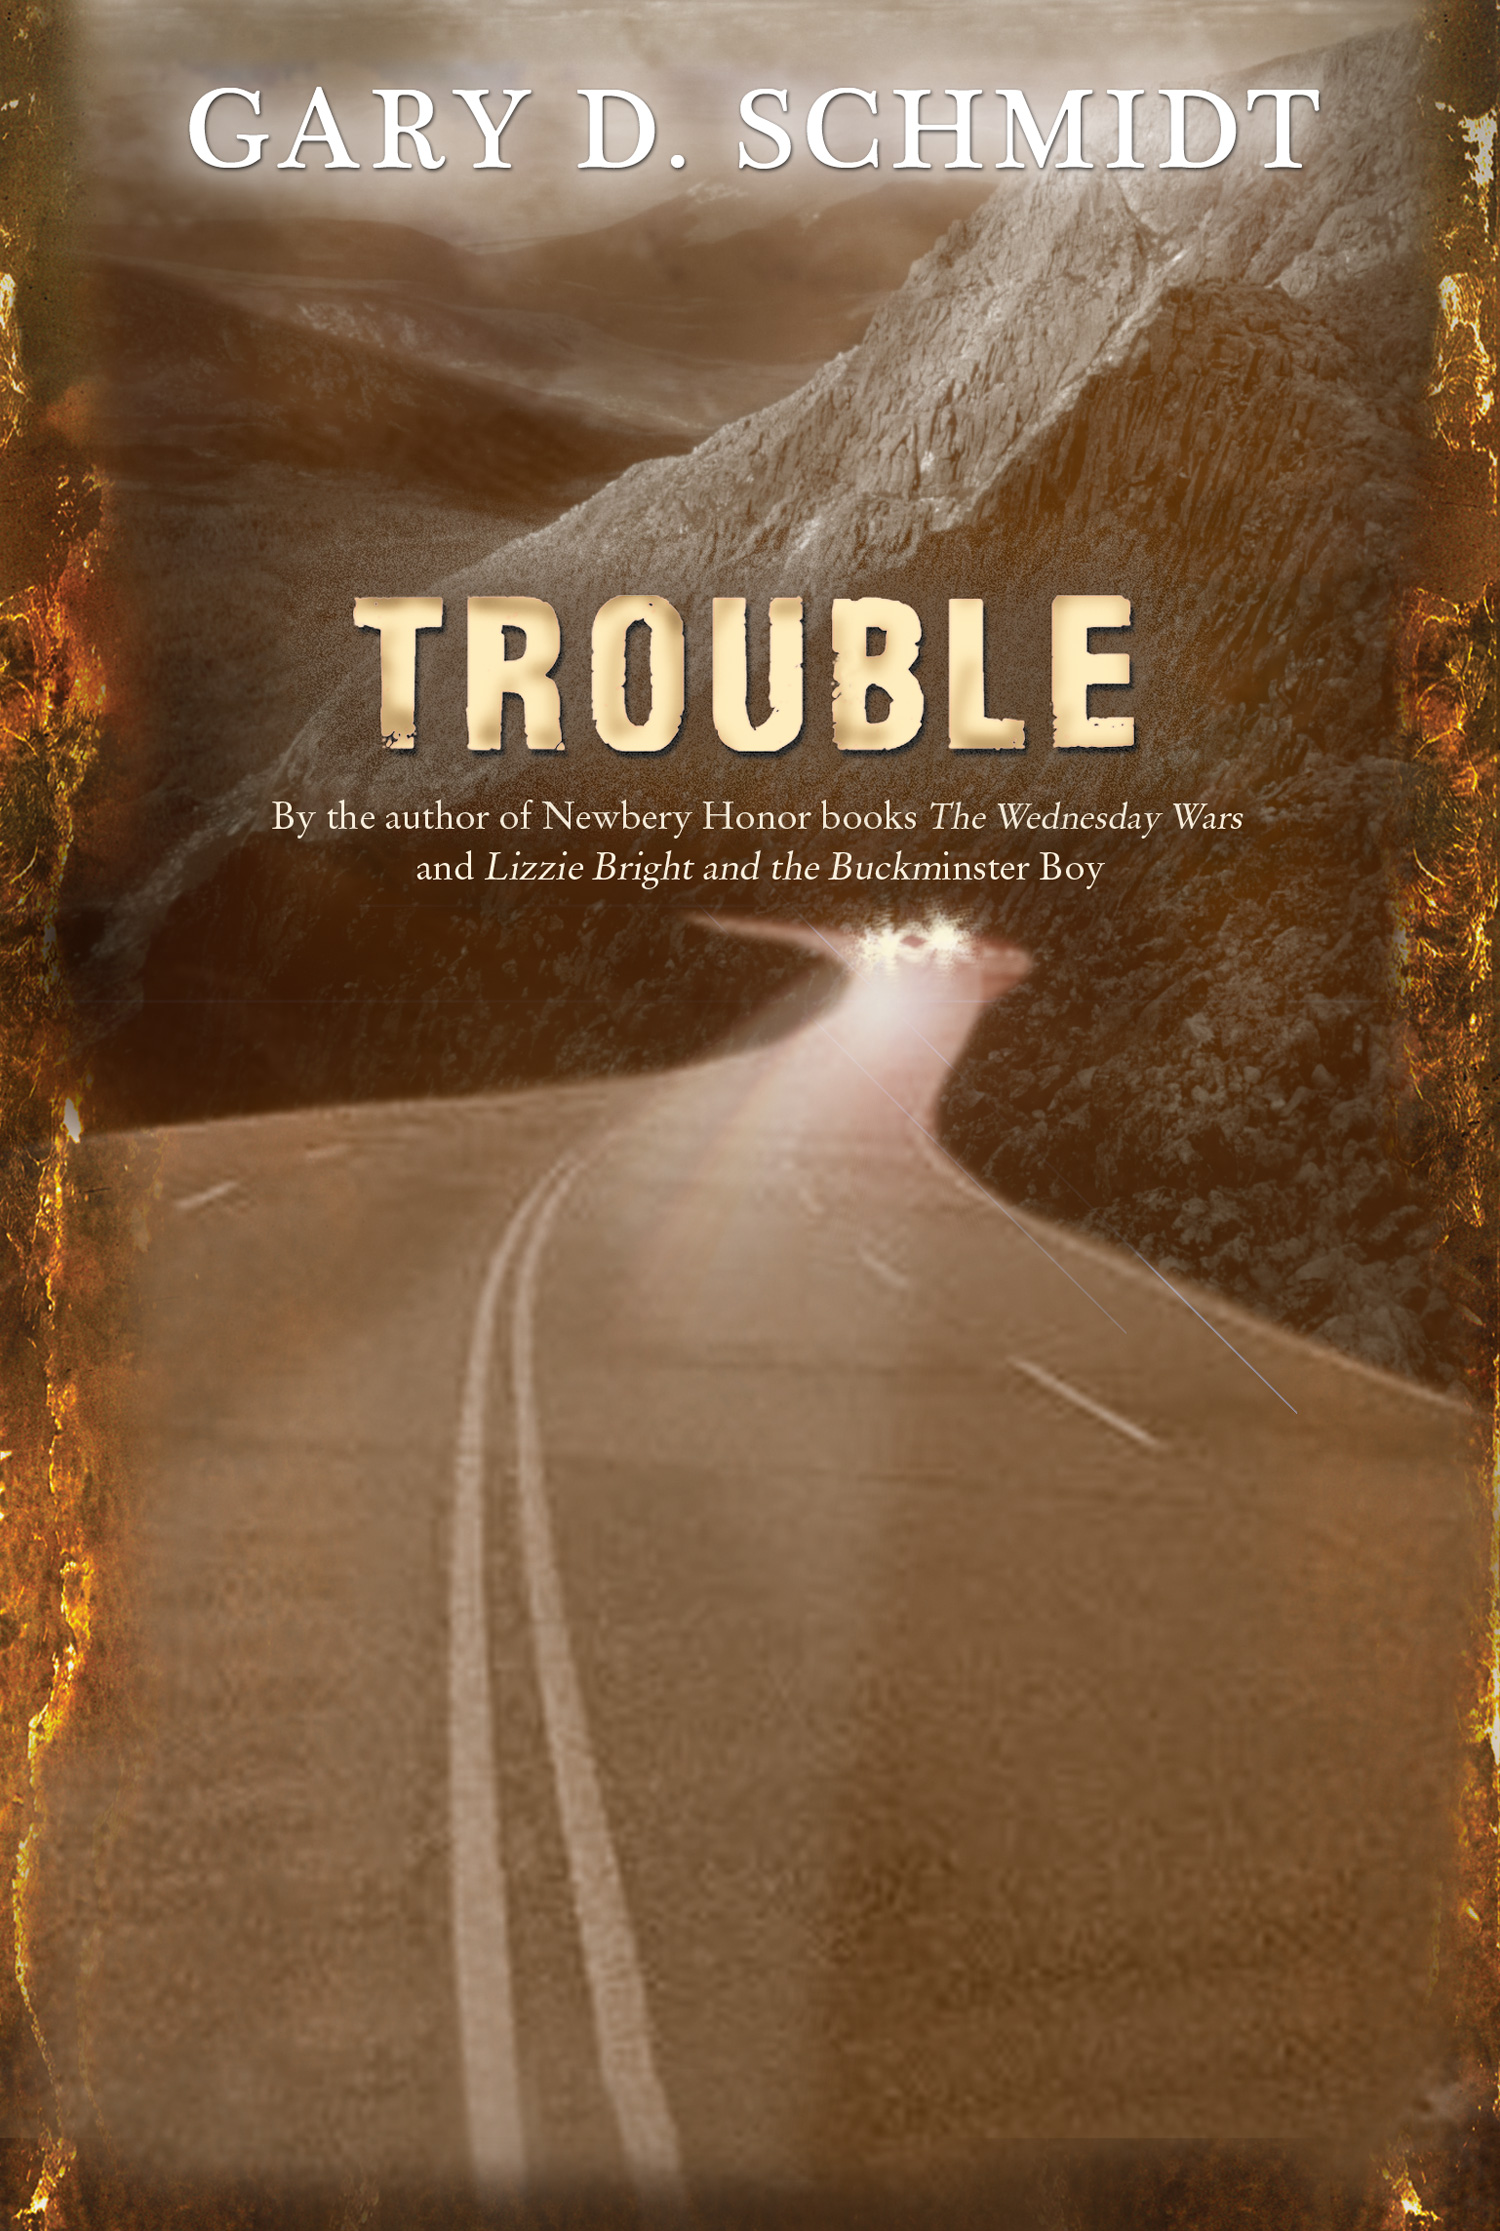 Trouble-9780547331331